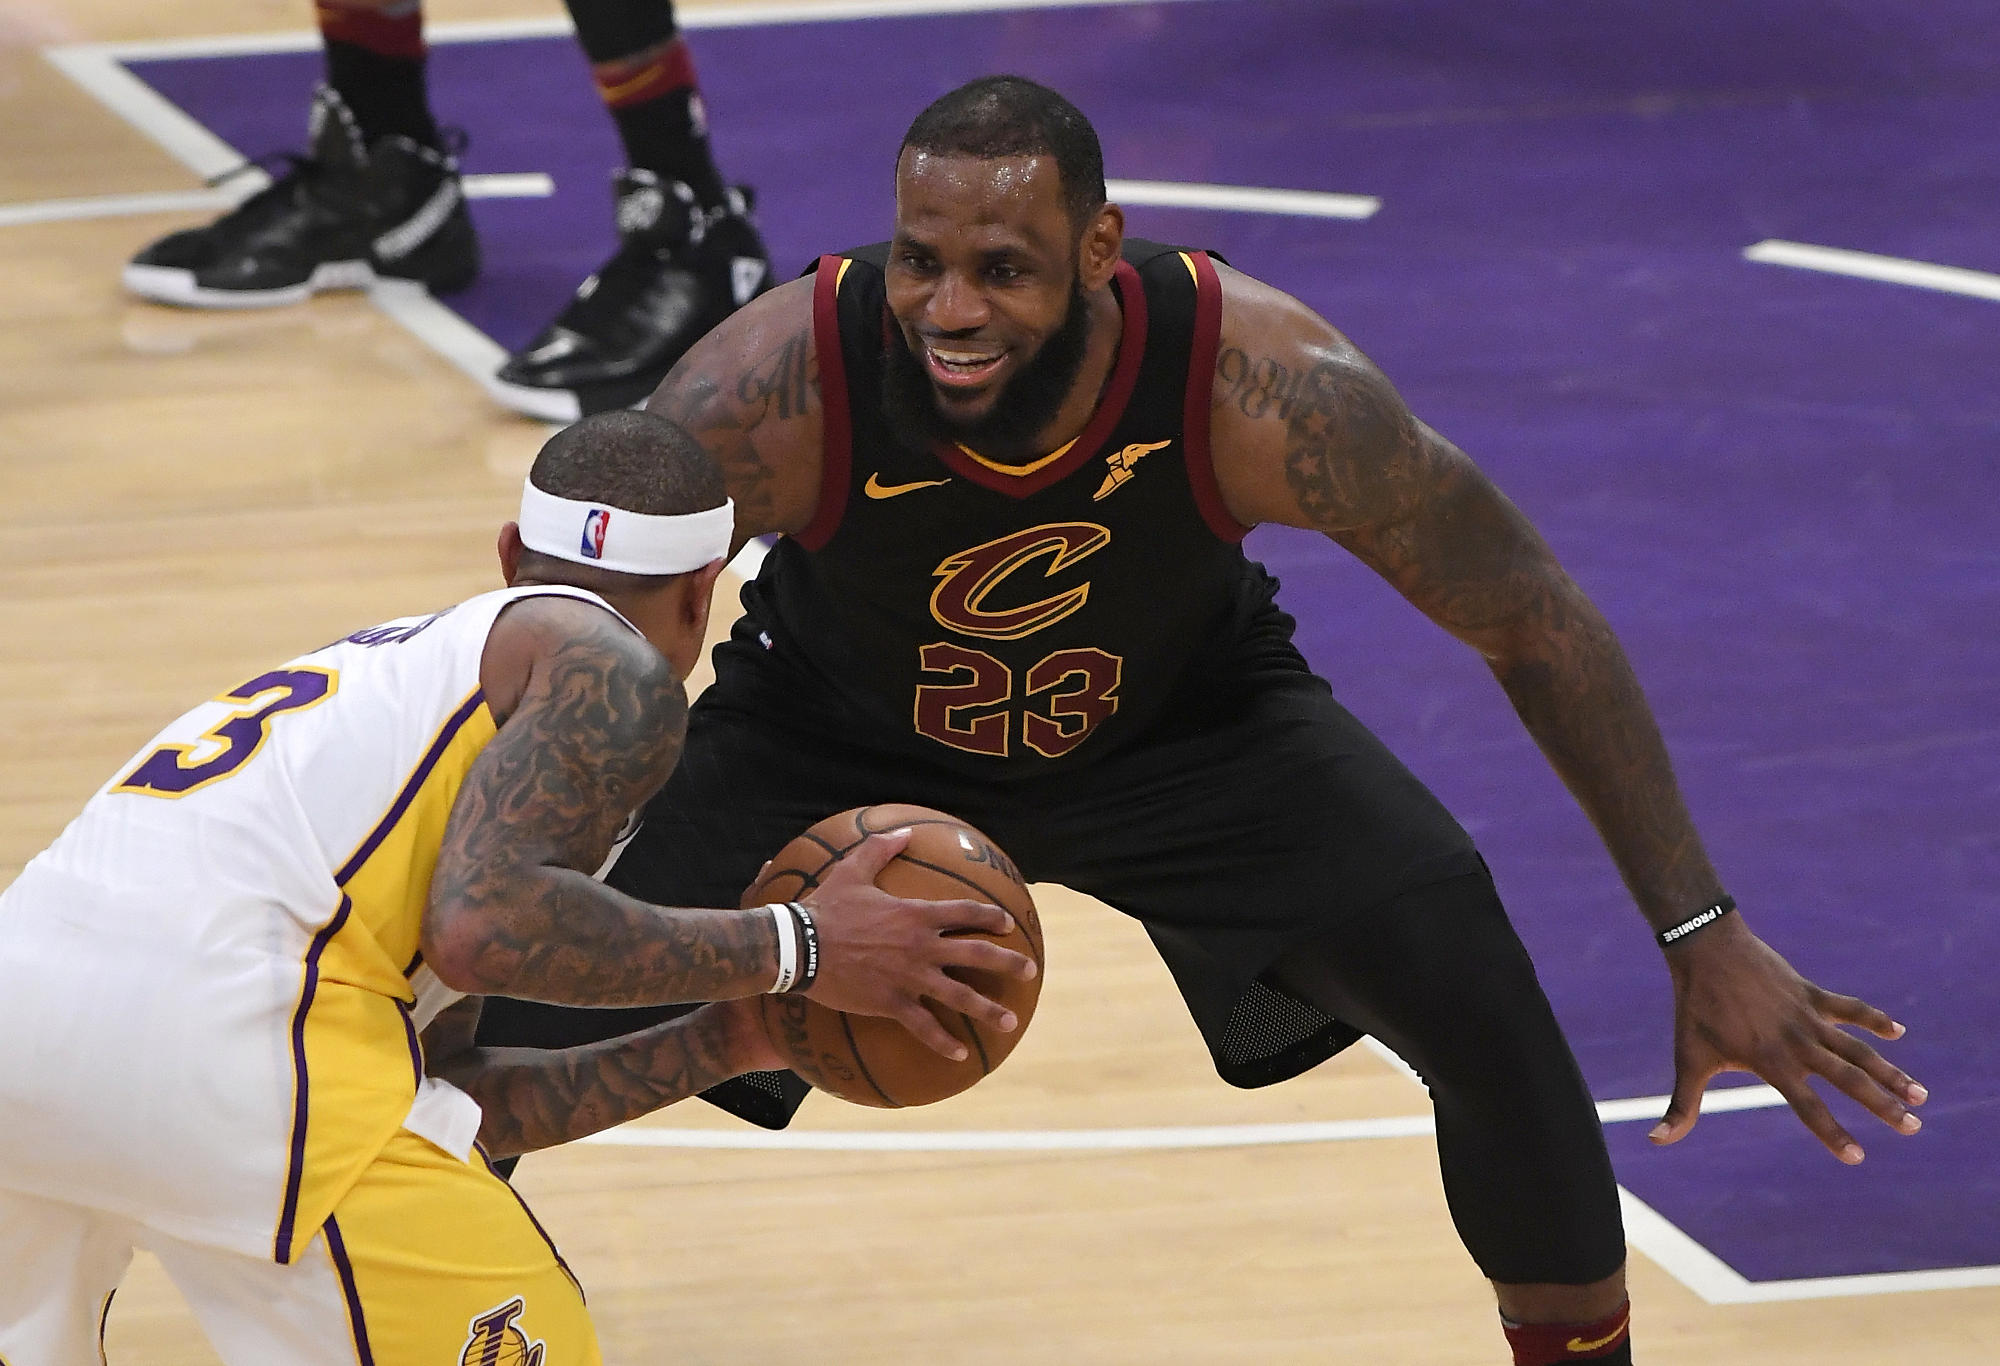 LeBron James defends Isaiah Thomas